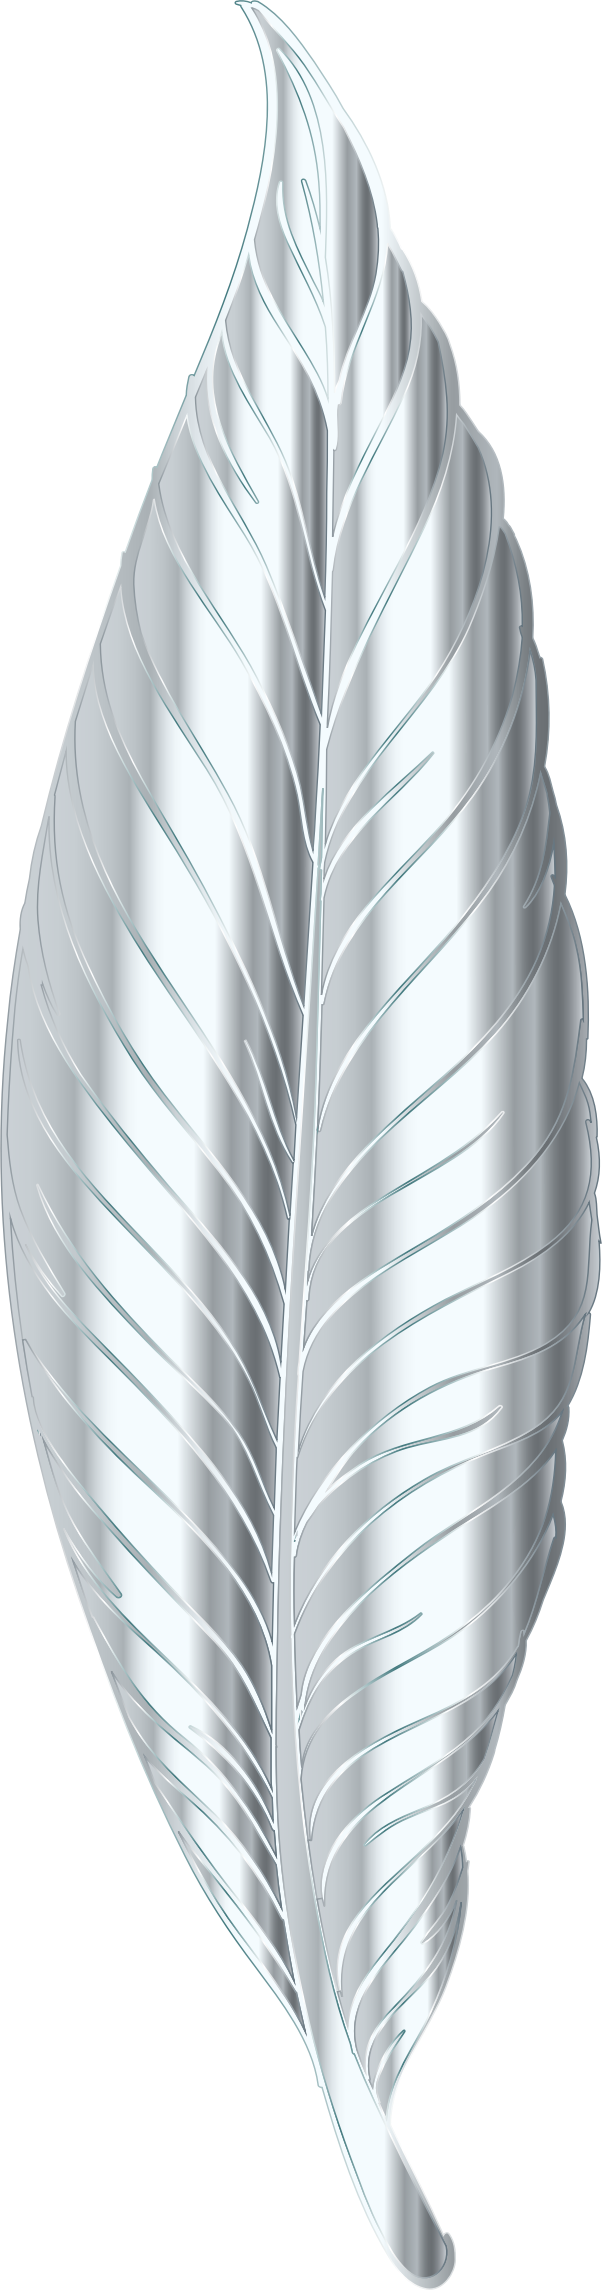 Silver Feather by GDJ